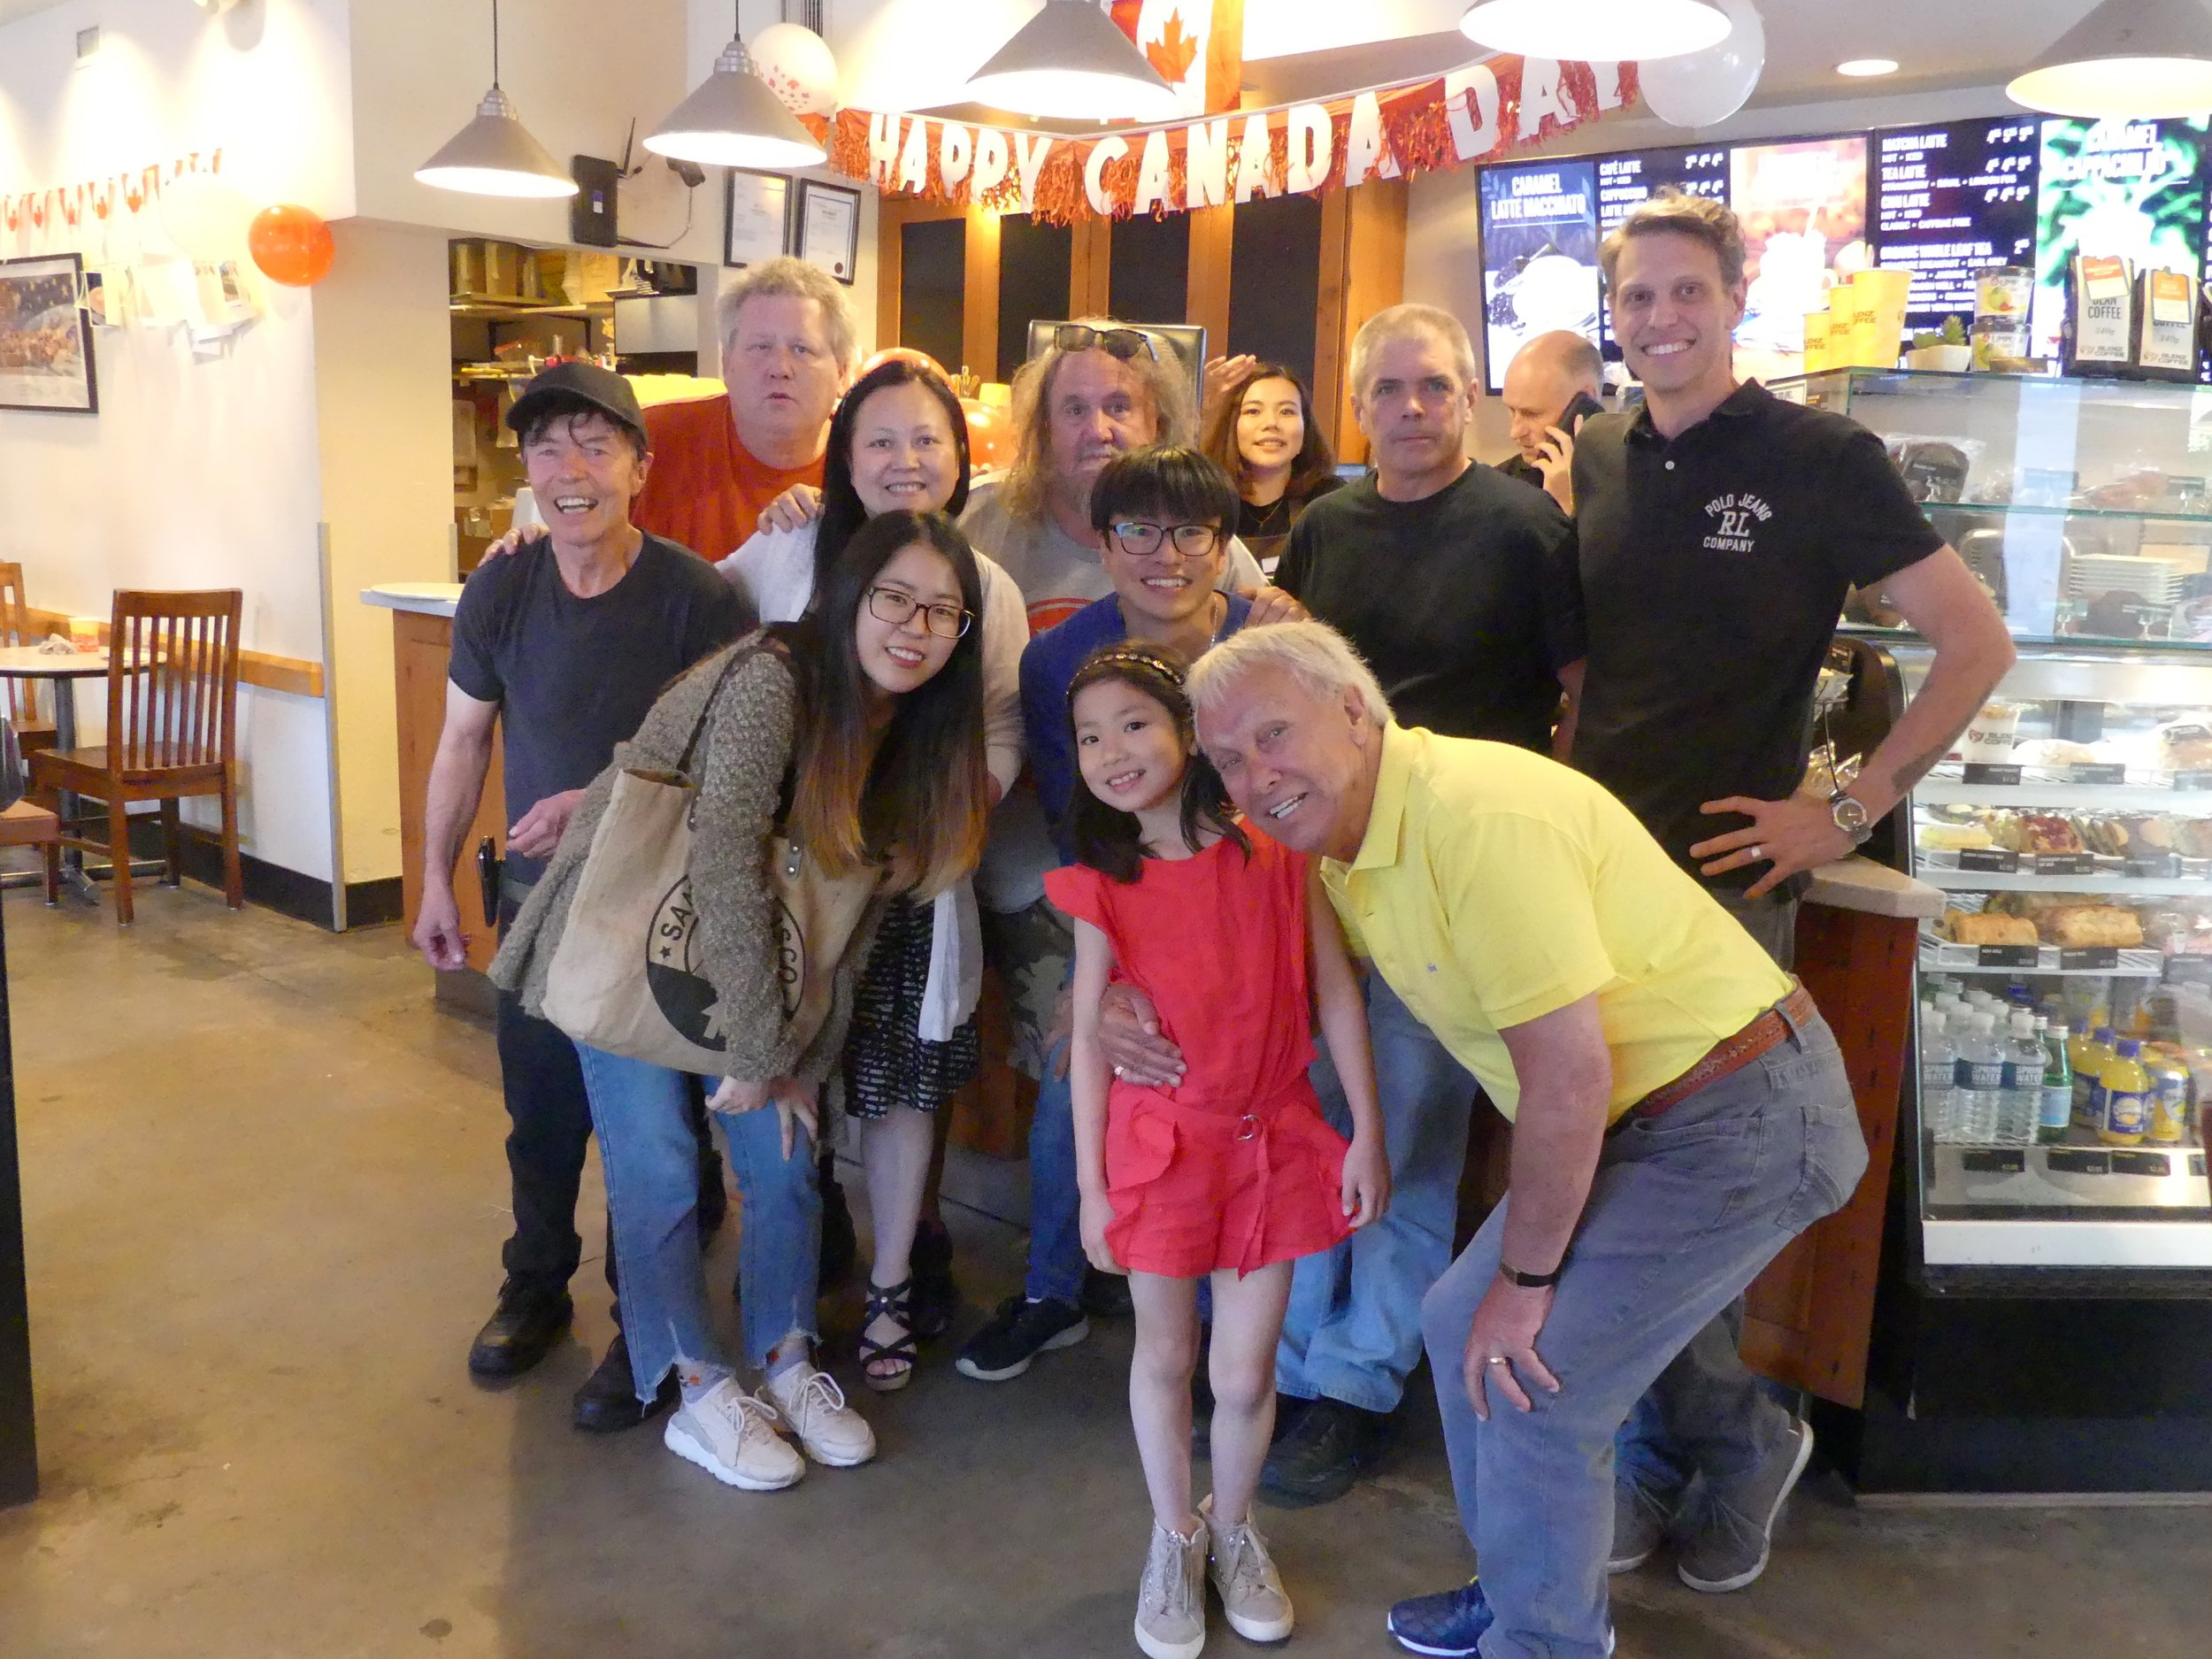 Blenz staff and regulars saying farewell to former owner Young Si (from left) back row: Ken Janco; James; Tina Si; Doug Batchelor; Nana Koike; Louis Bouchard; unidentified guy from head office; new franchise partner Michael Varesio; (front row) Rachel Kim; Erin Si; and an unidentified partier.